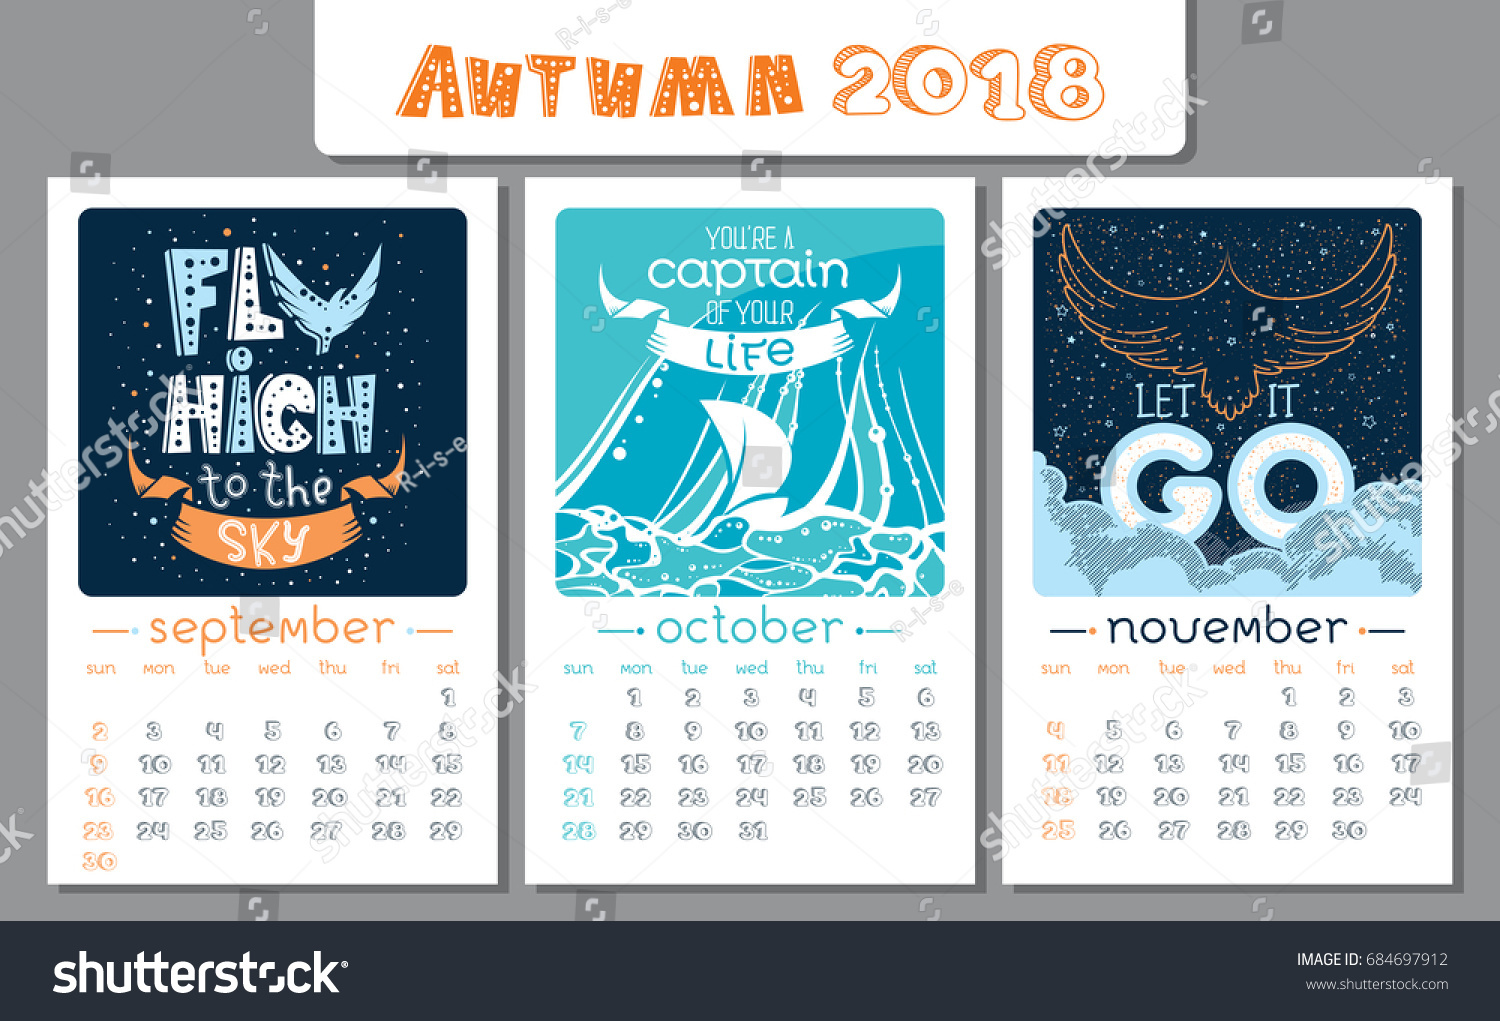 November Calendar Design : Calendar design year vector illustration stock